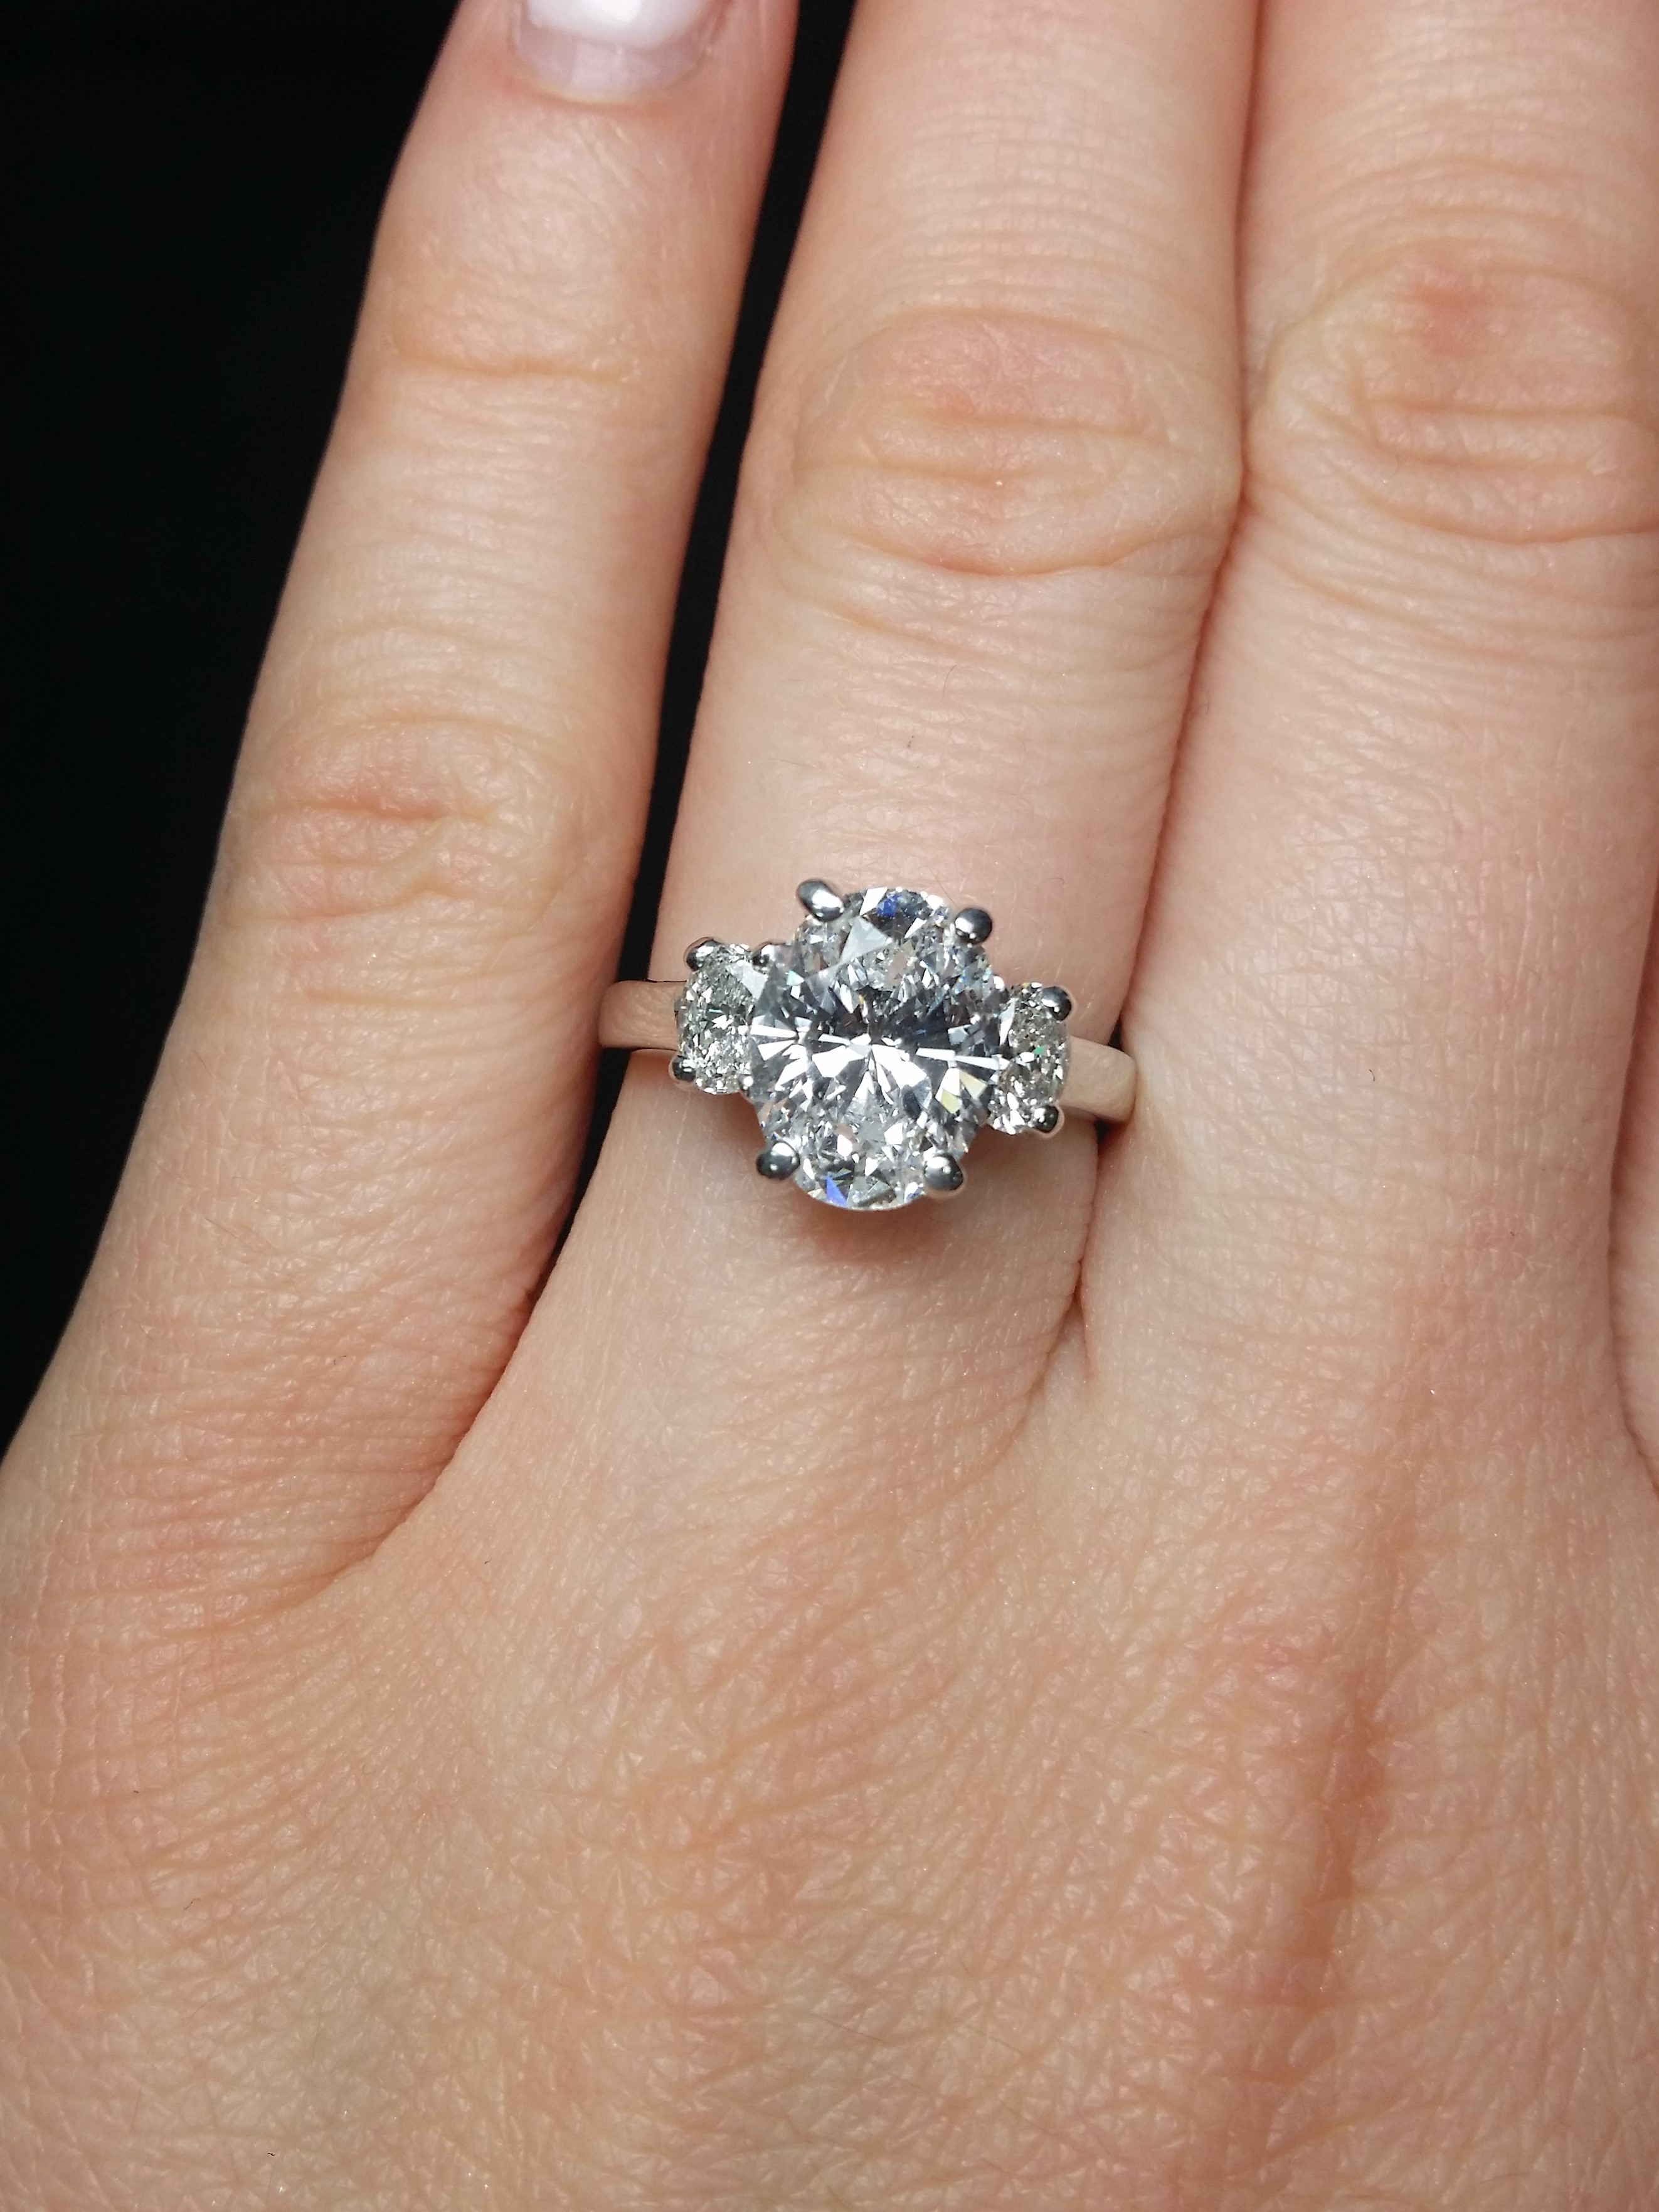 Dream engagement ring with three sparkling oval cut diamonds